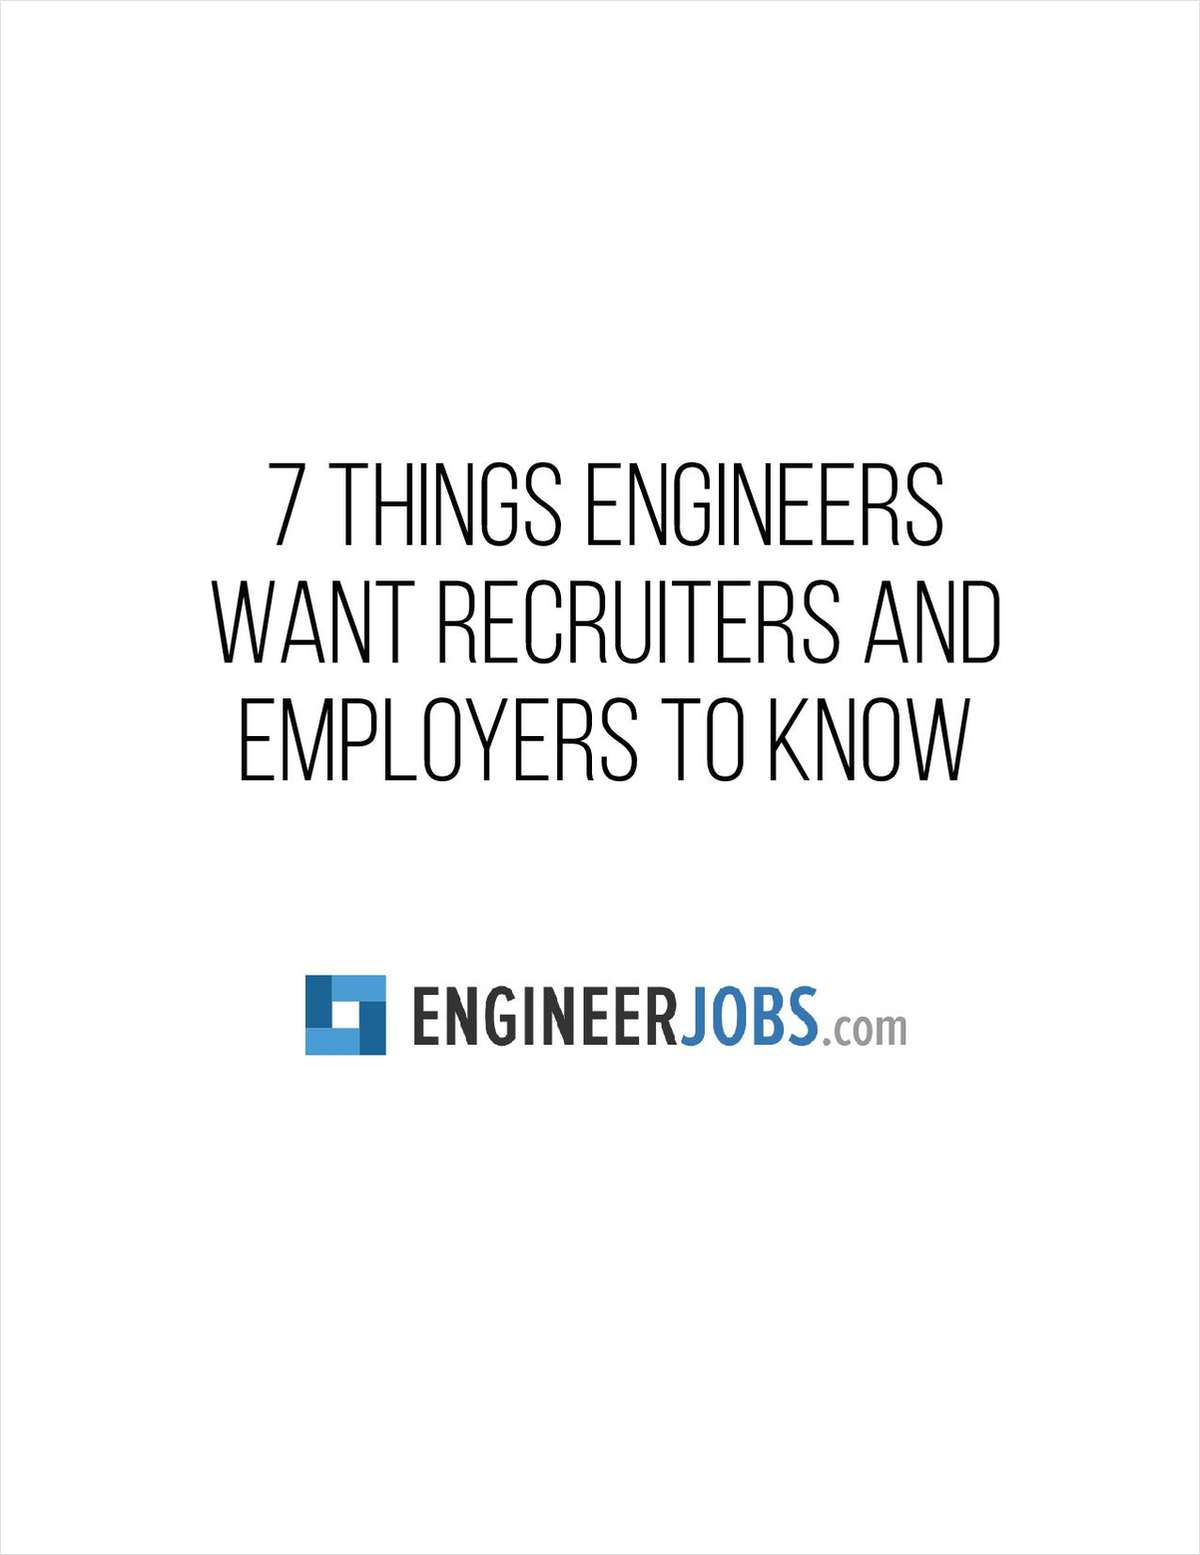 7 Things Engineers Want Recruiters and Employers to Know